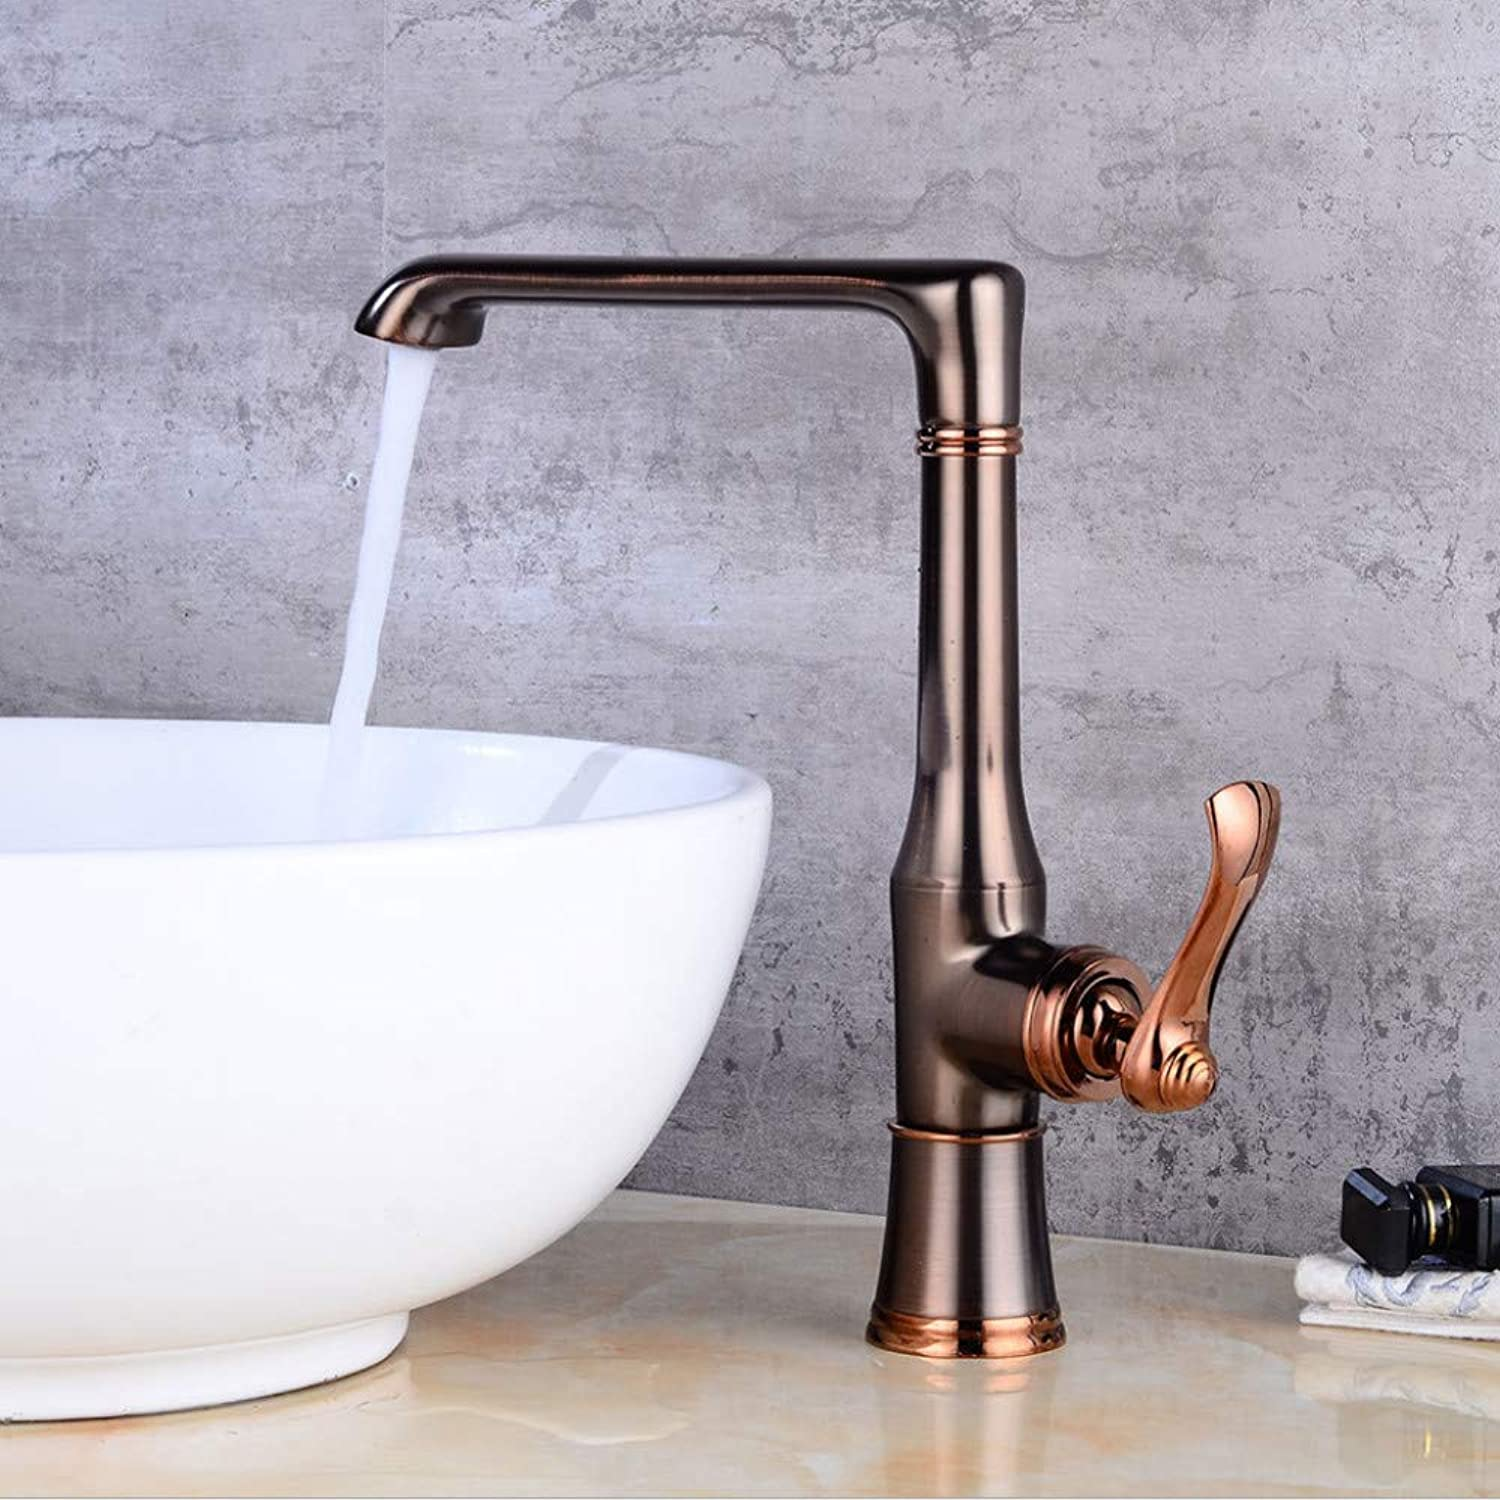 Faucet European Retro Kitchen Faucet Sink Faucet redating Sink Faucet hot and Cold Water Faucet